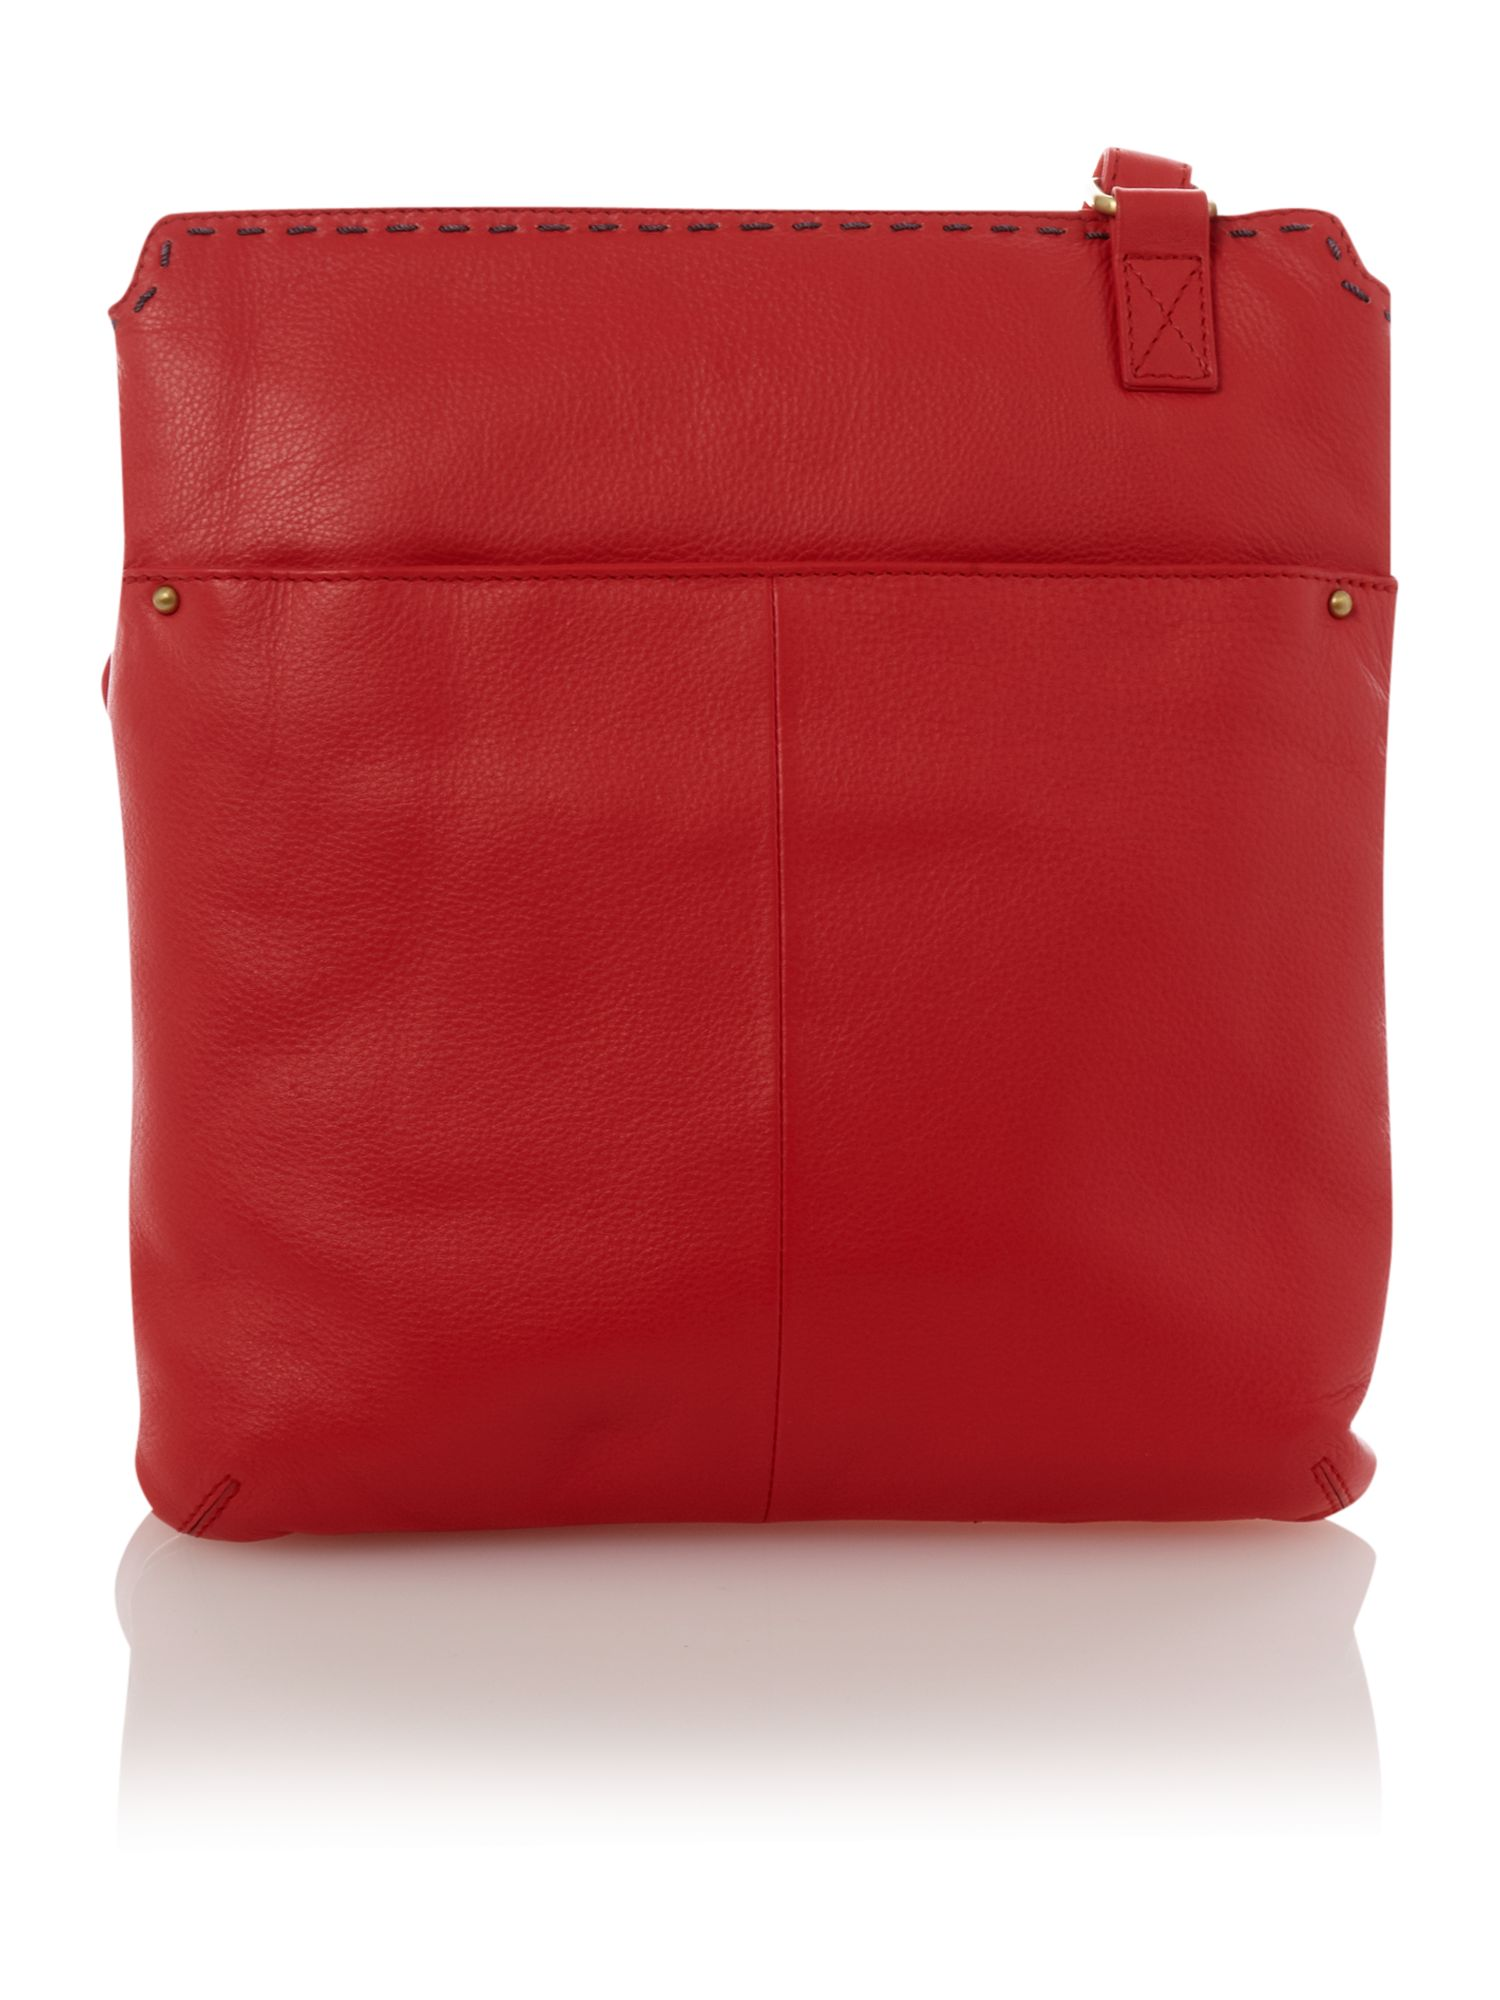 Dickins & Jones Yorkshire Small Cross Body Bag in Red